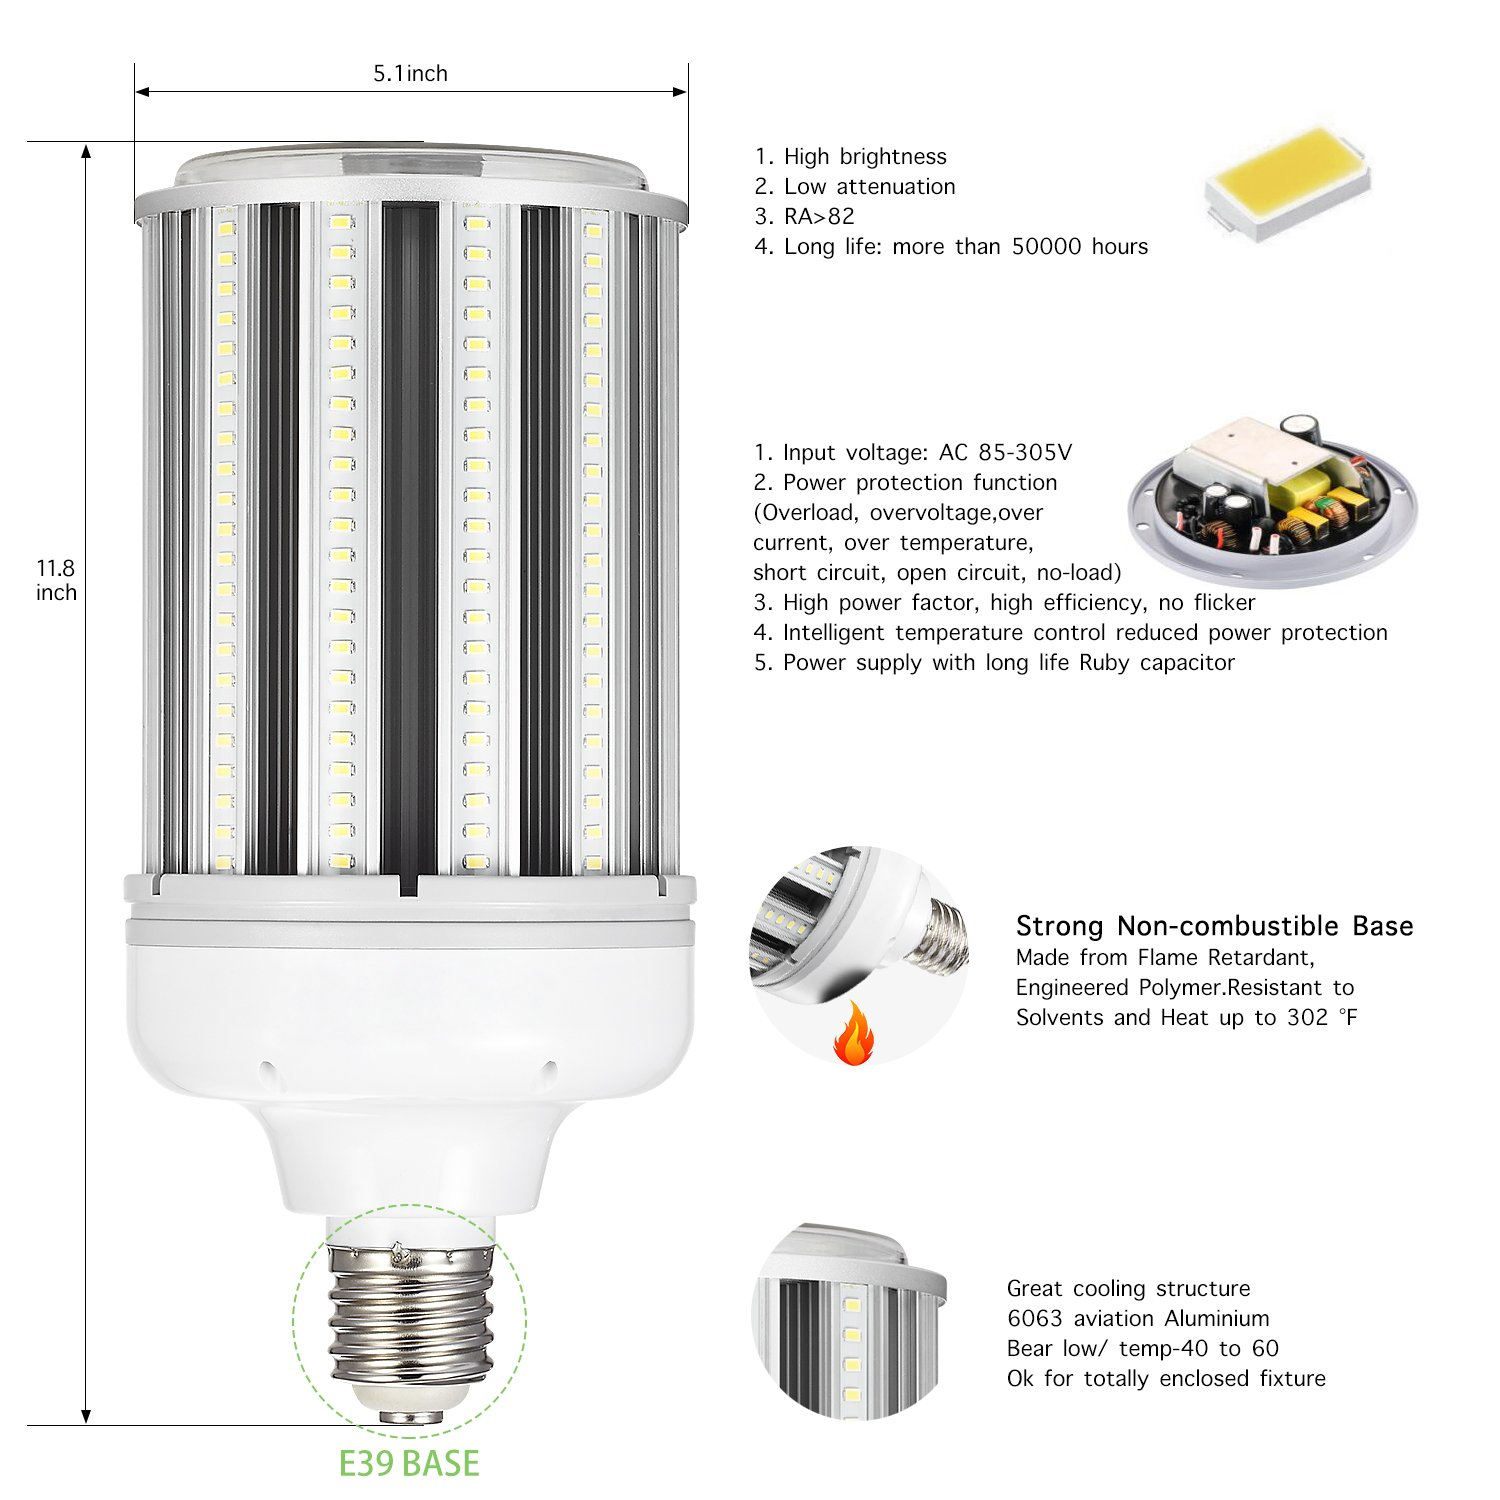 120w Led Corn cob Light Bulb E39 Base, 5000K 15600lm AC100-277V,CFL HID HPS Metal Halide(500w) Replacement for Street and Area Light Factory Warehouse High Bay Work Light Parking Lot Super by AINIYO (Image #2)